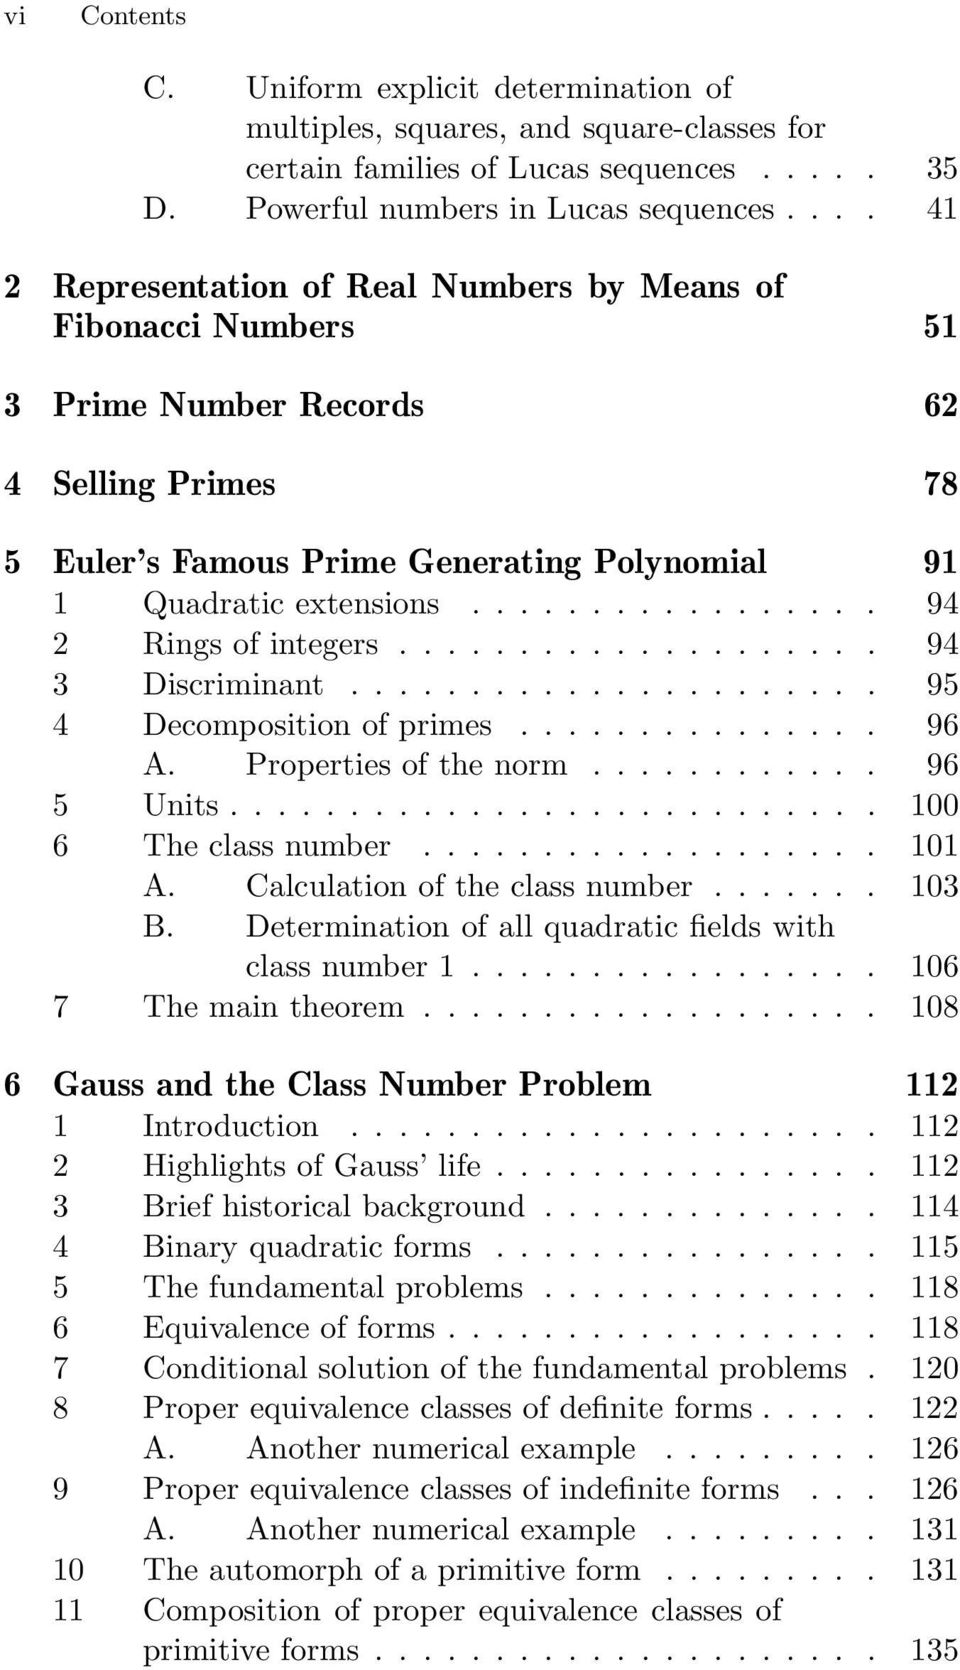 ... 94 2 Ringsofintegers.... 94 3 Discriminant.... 95 4 Decompositionofprimes.... 96 A. Propertiesofthenorm.... 96 5 Units.... 100 6 Theclassnumber.... 101 A. Calculationoftheclassnumber.... 103 B.